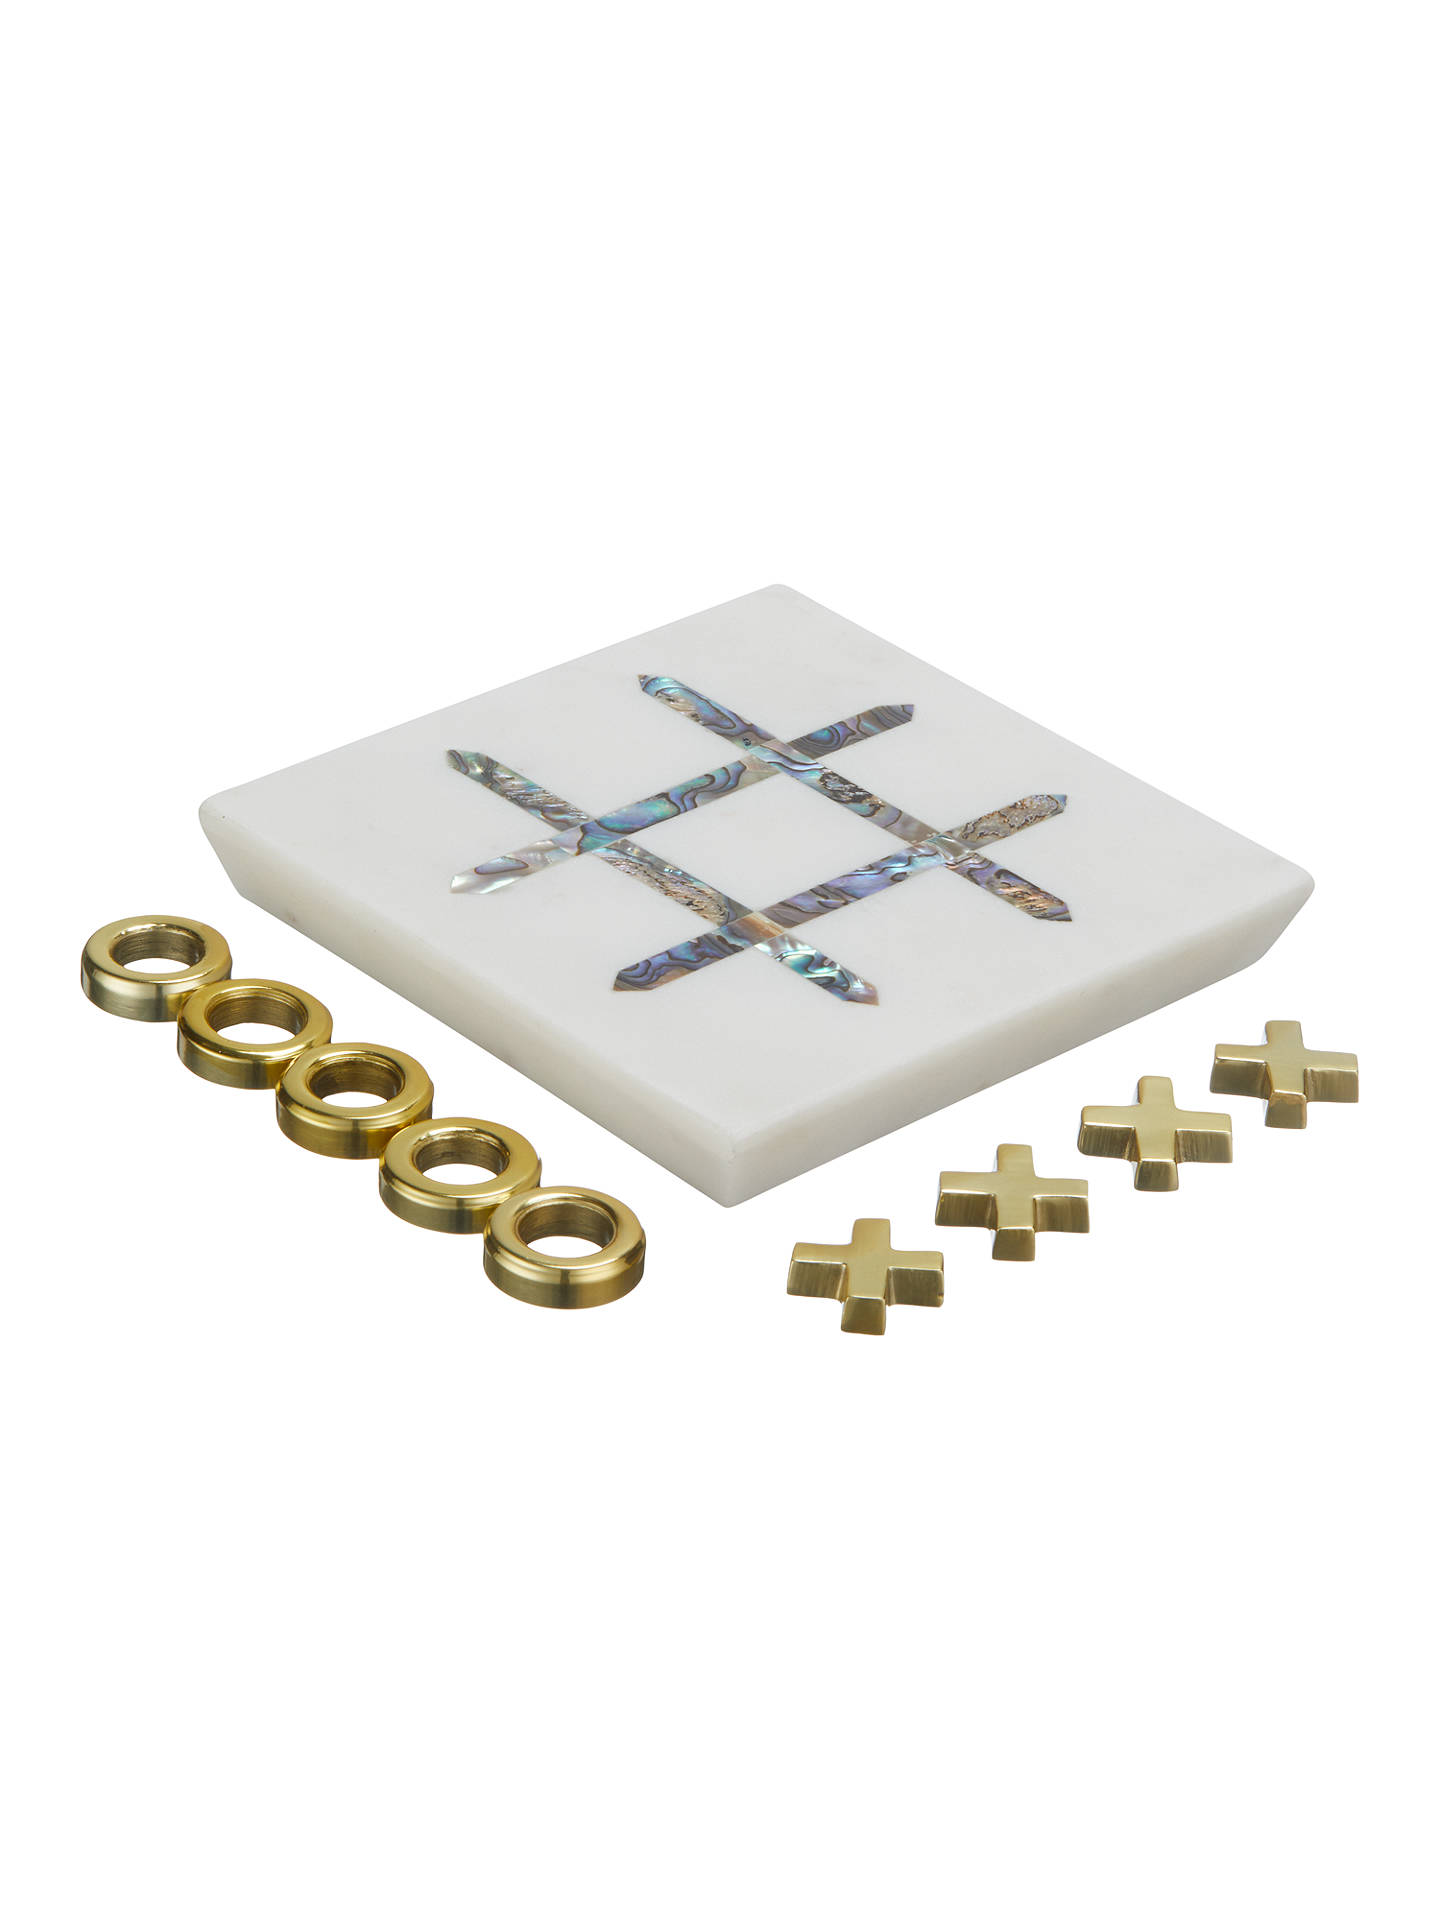 BuyJohn Lewis & Partners Noughts And Crosses, Gold/White Online at johnlewis.com